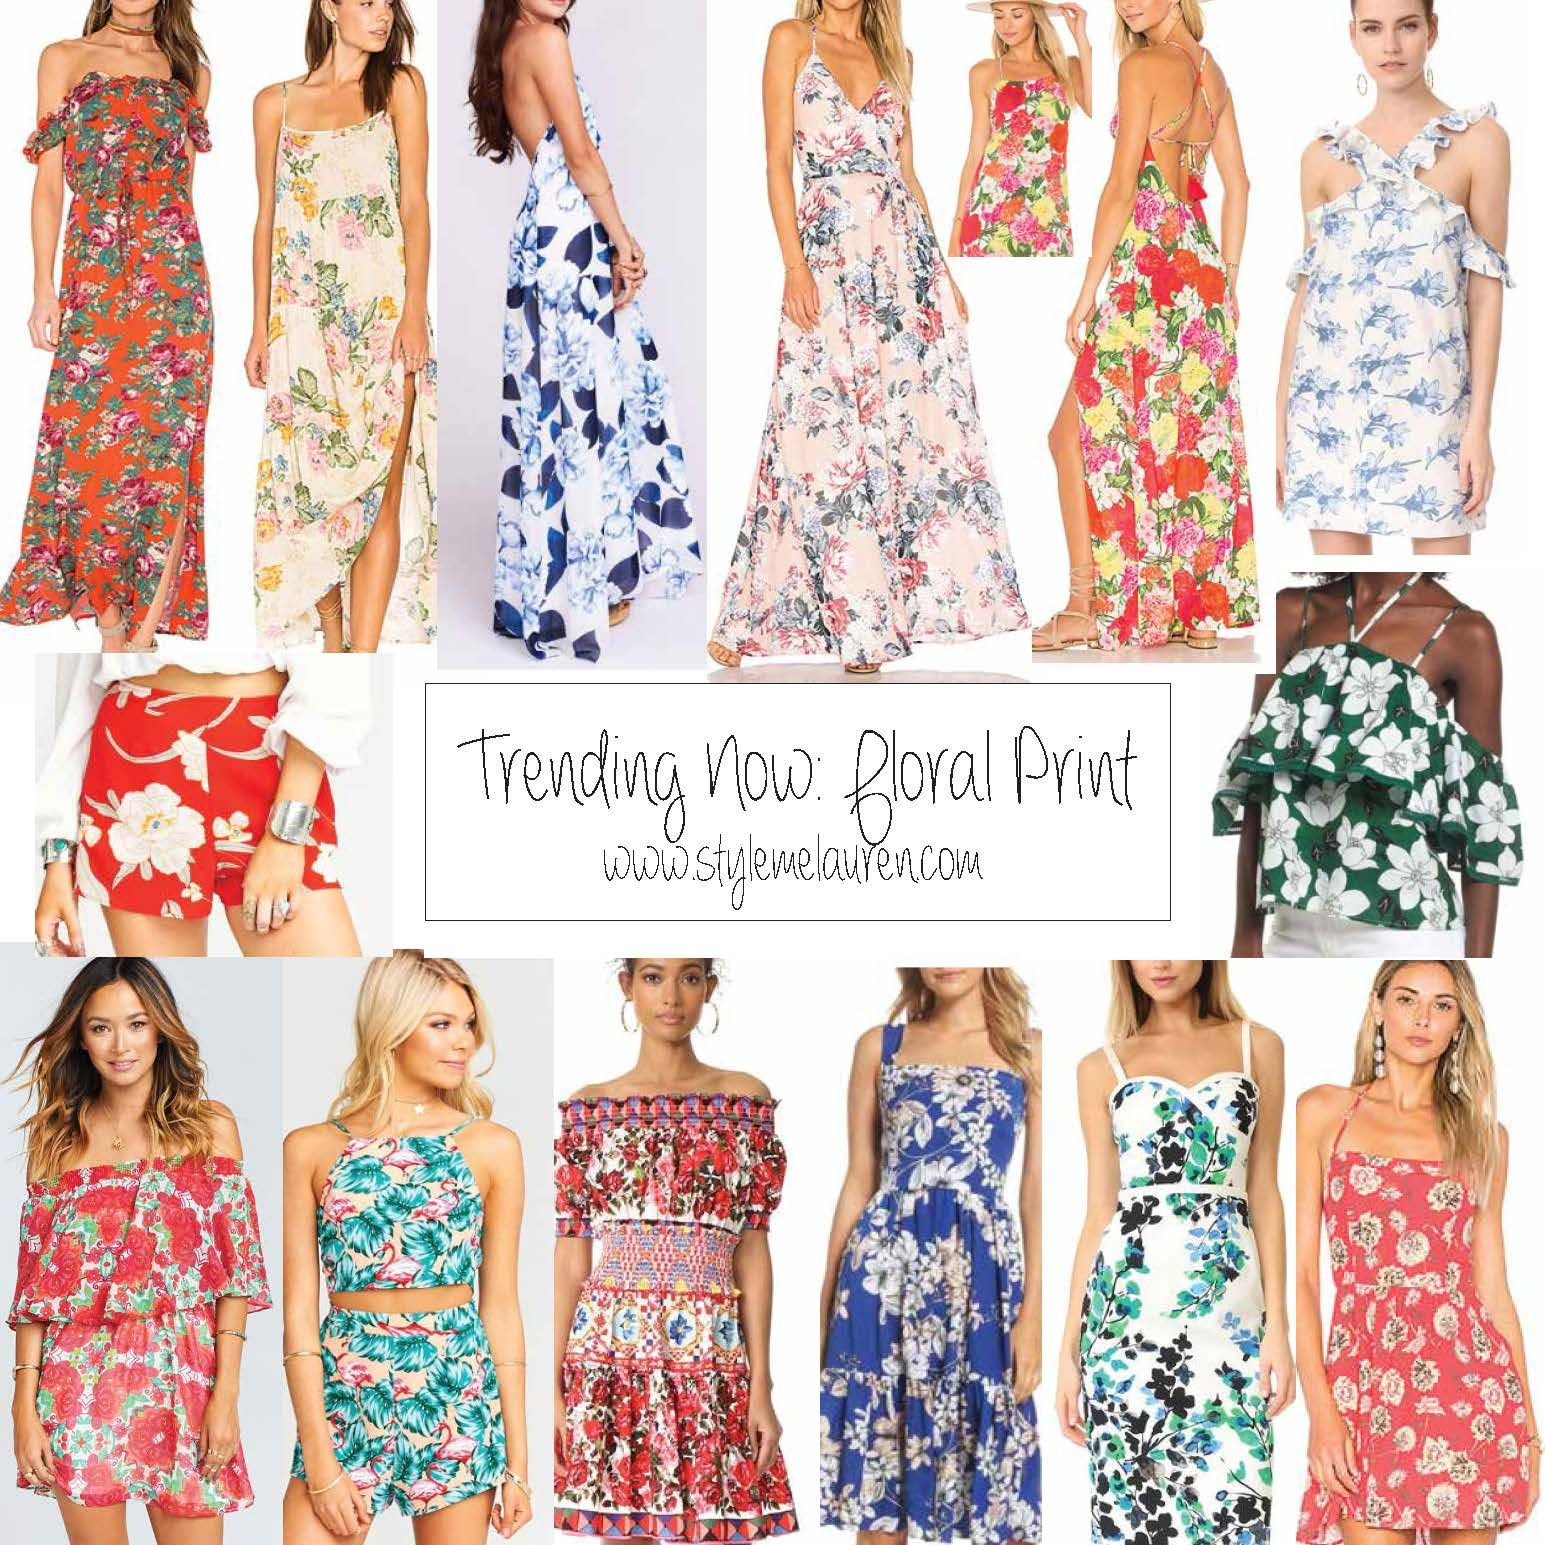 a38c9dd2a1f Trending Now  Floral Print